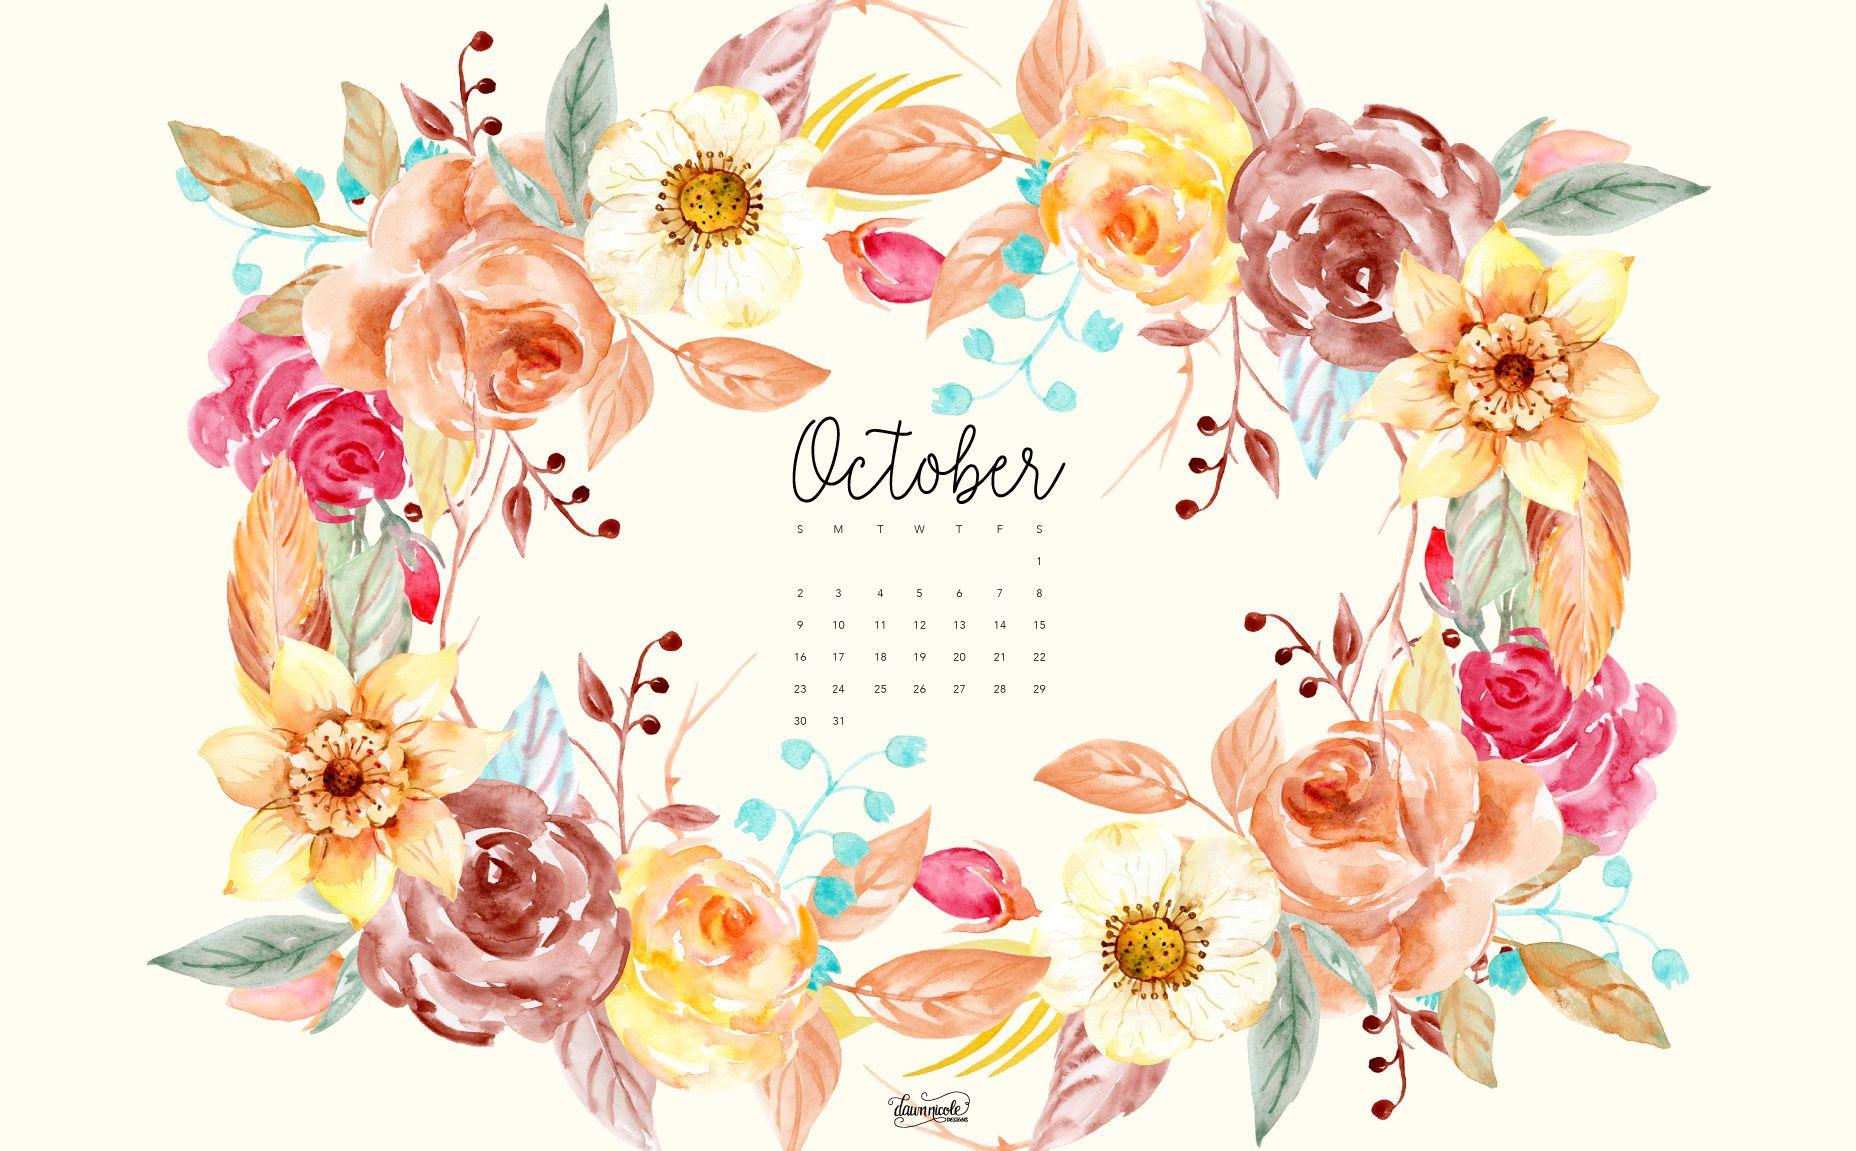 Calendar 2017 October Flowers – Printable Editable Blank Calendar 2017